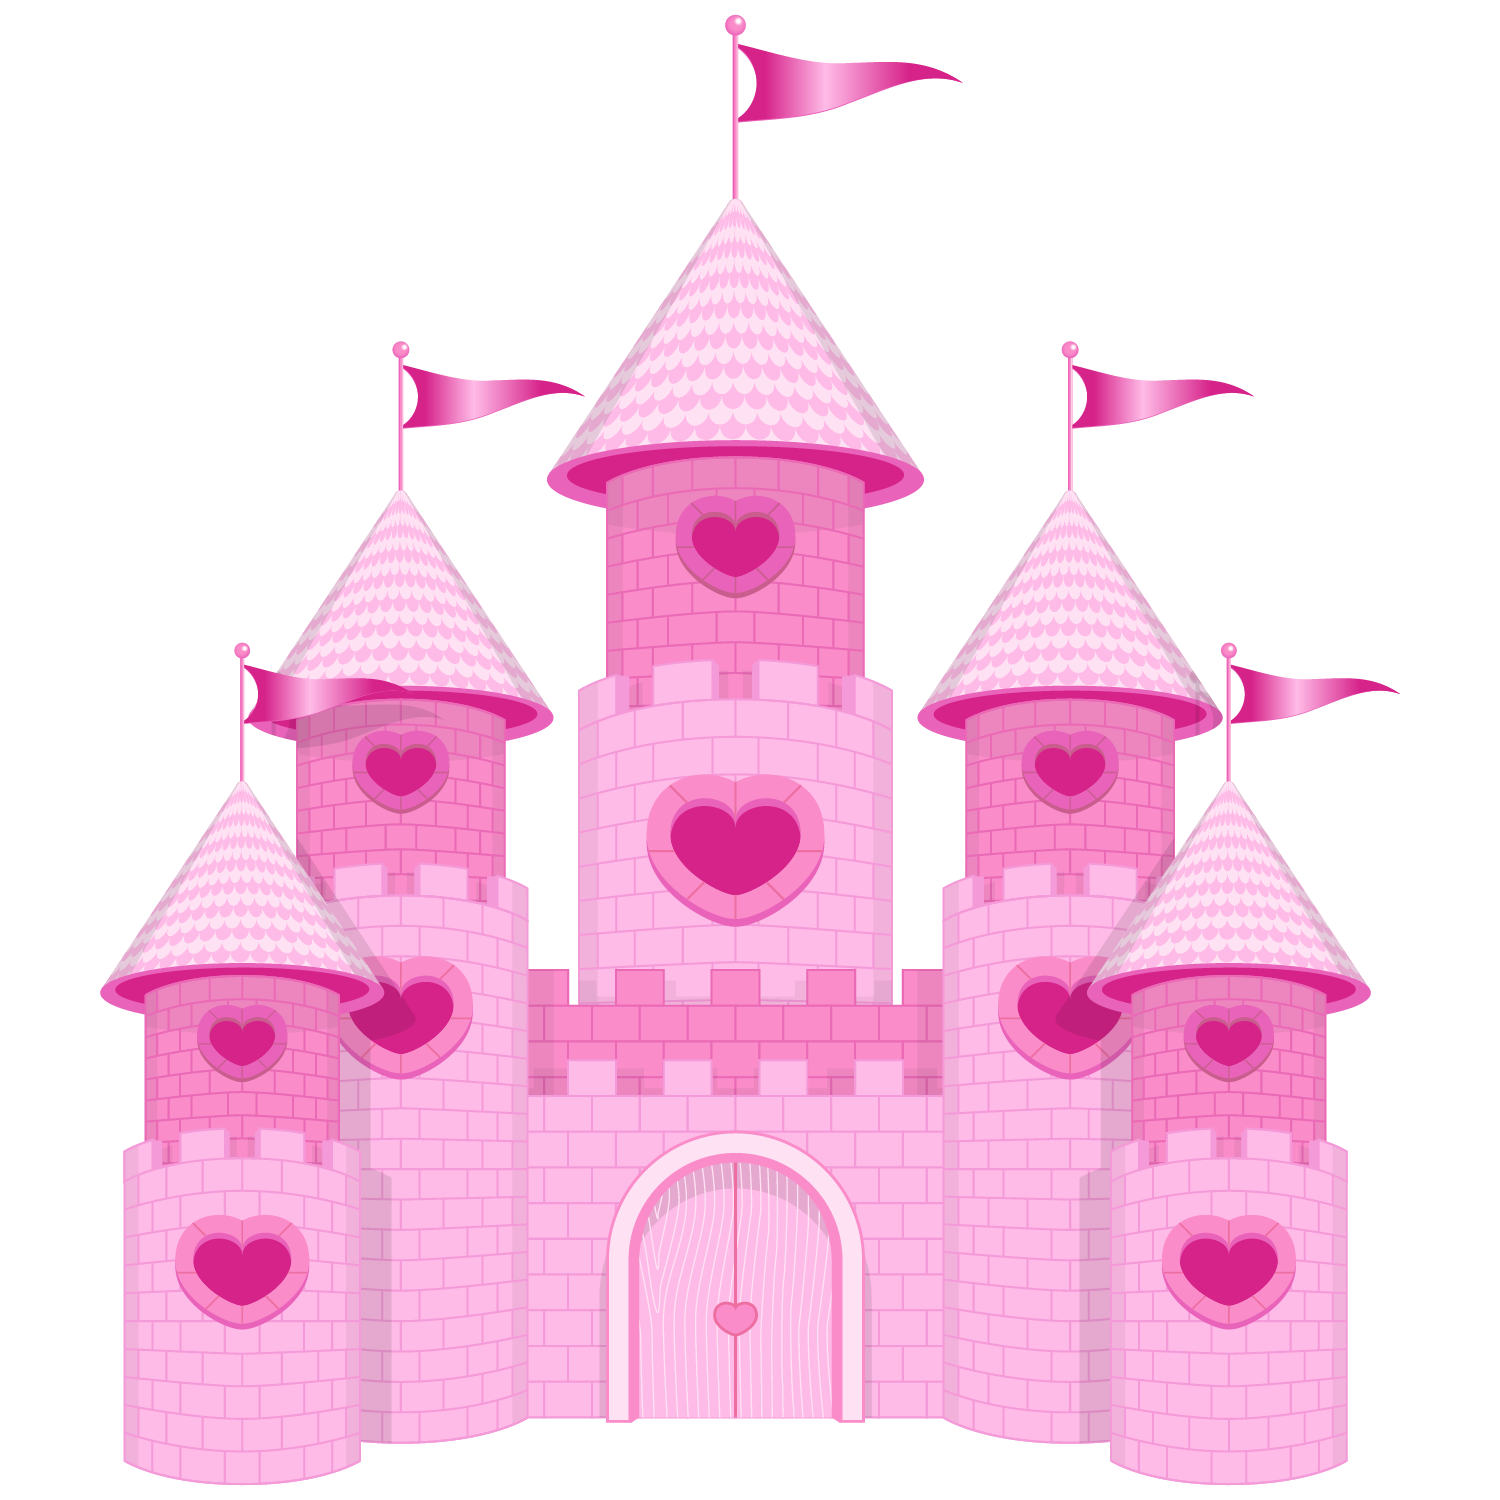 Princesas e pr ncipes. Clipart castle bedroom